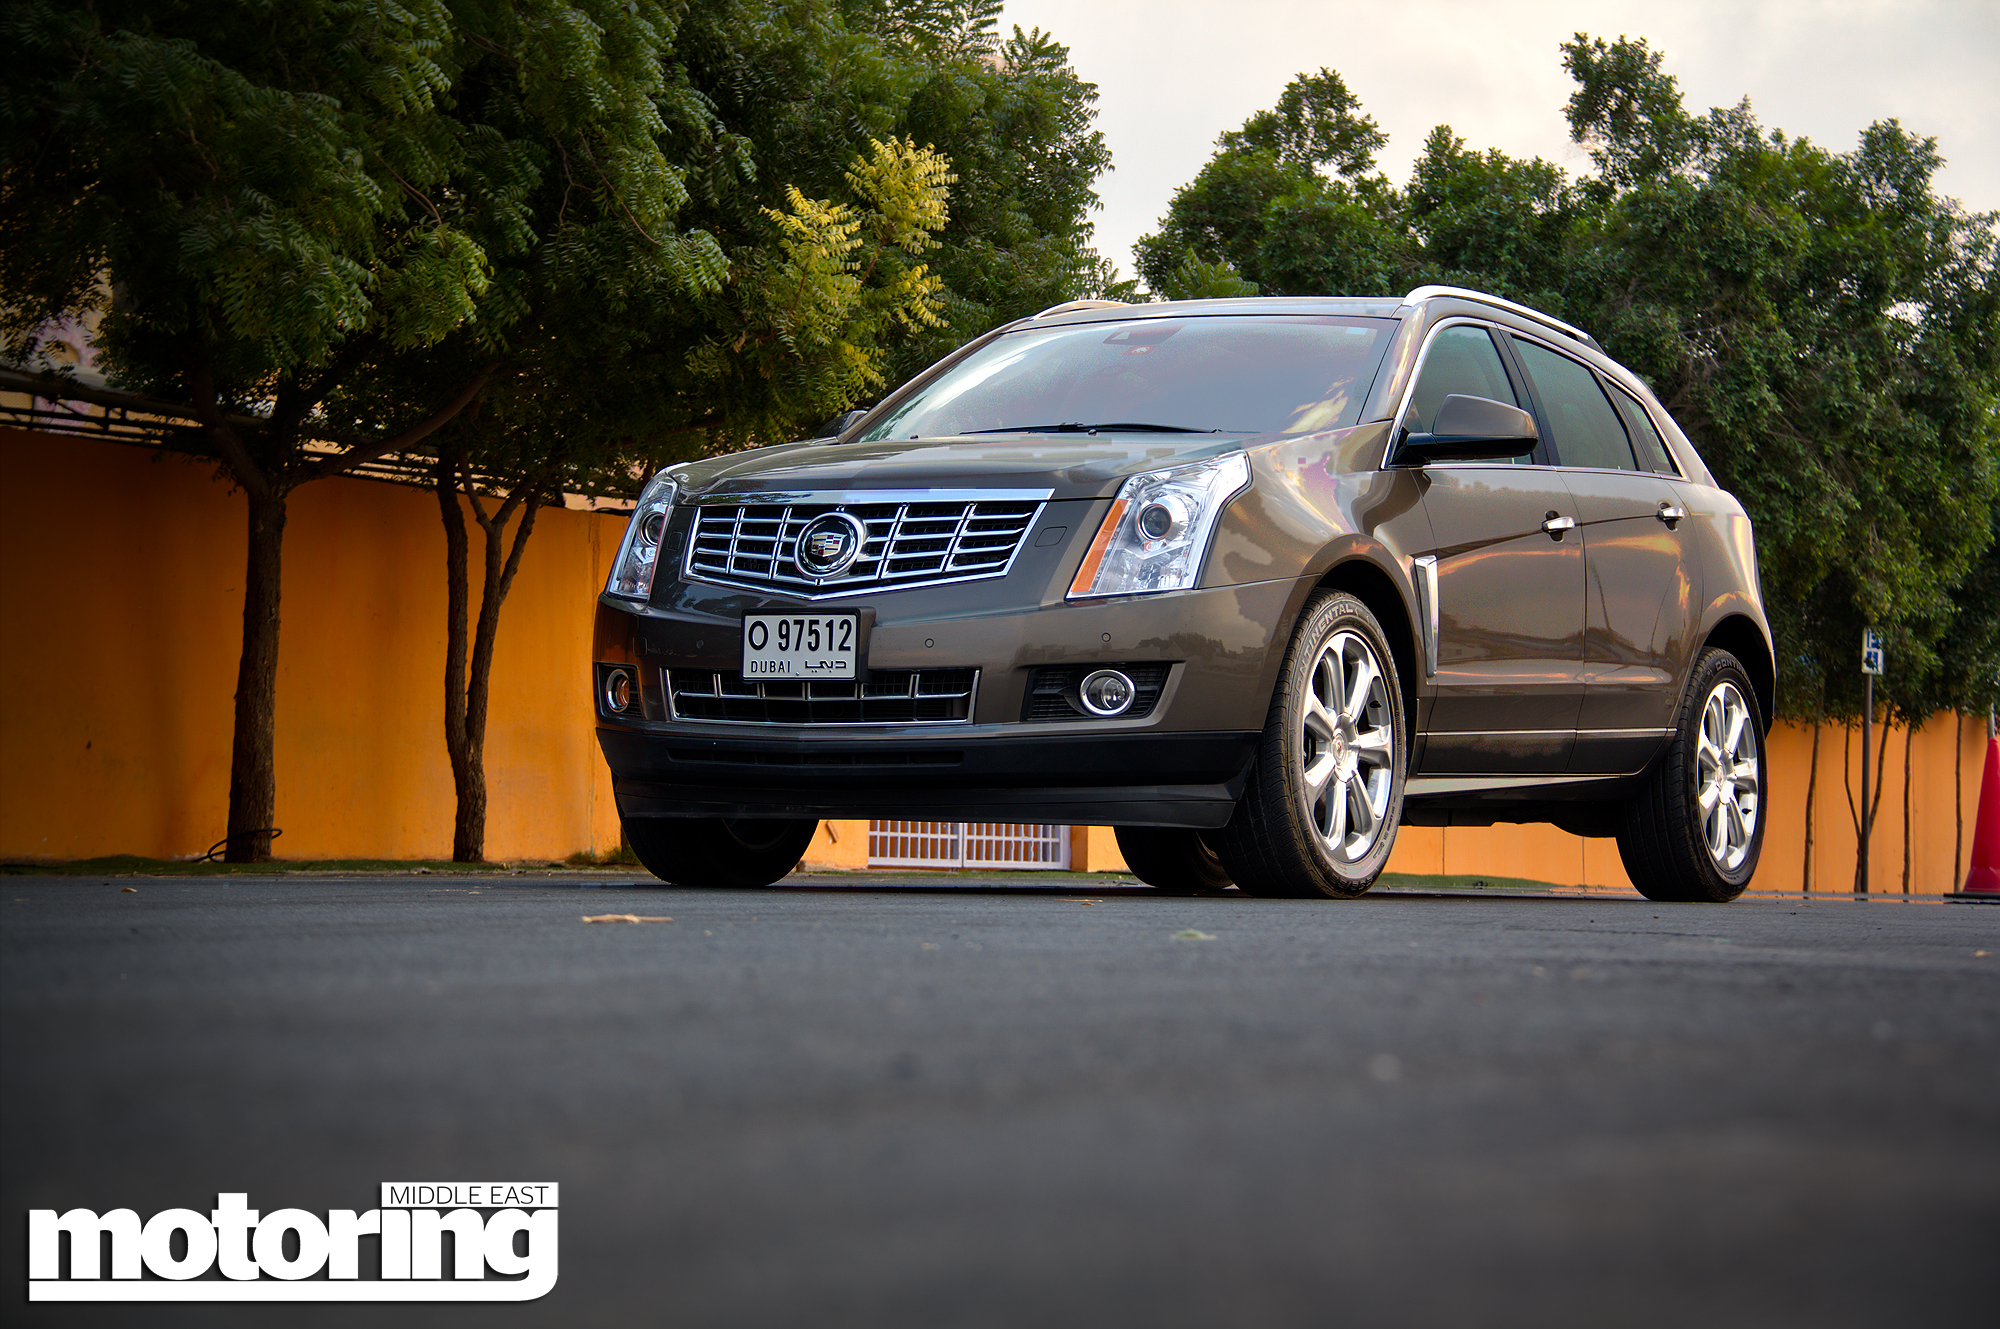 fun with features car srxmotoring news family east srx cadillac middle hdr img